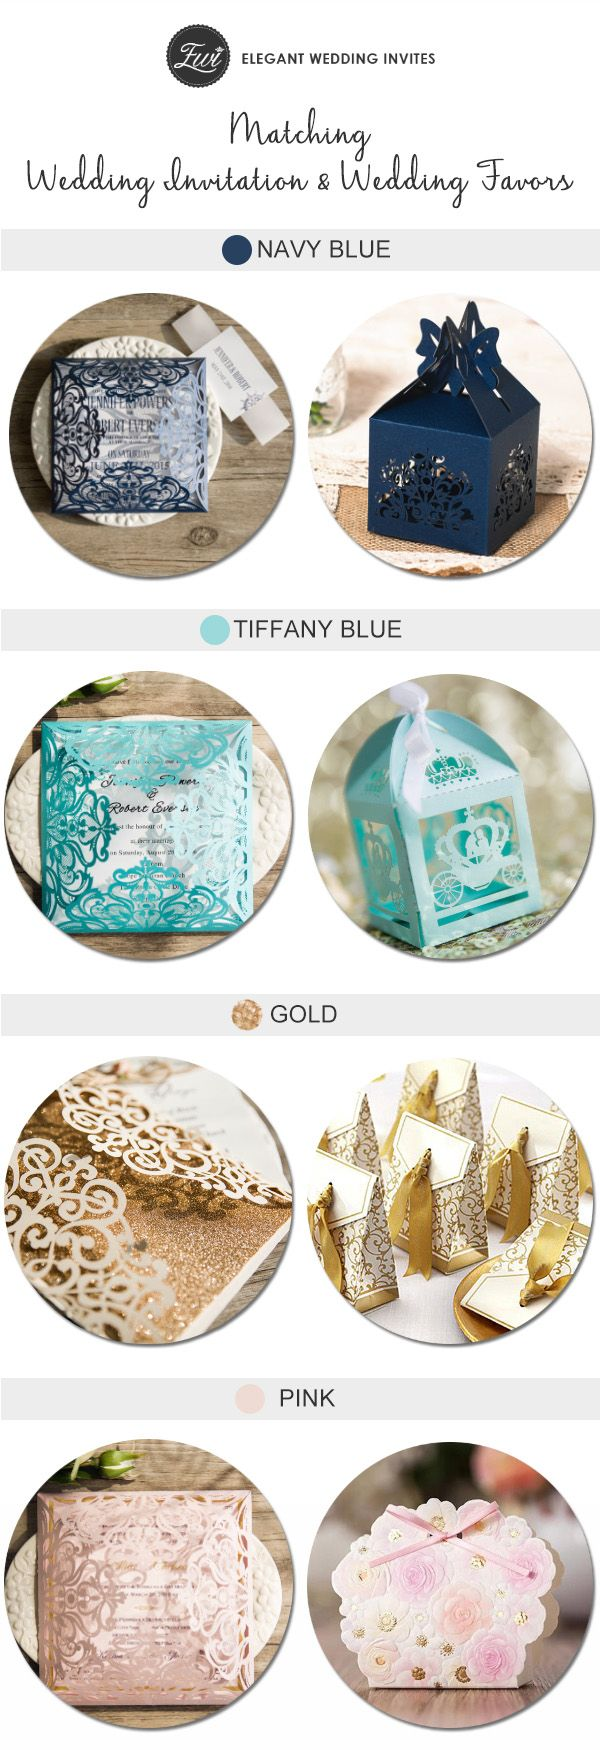 elegant laser cut wedding invitations and wedding favors to match with your color schemes